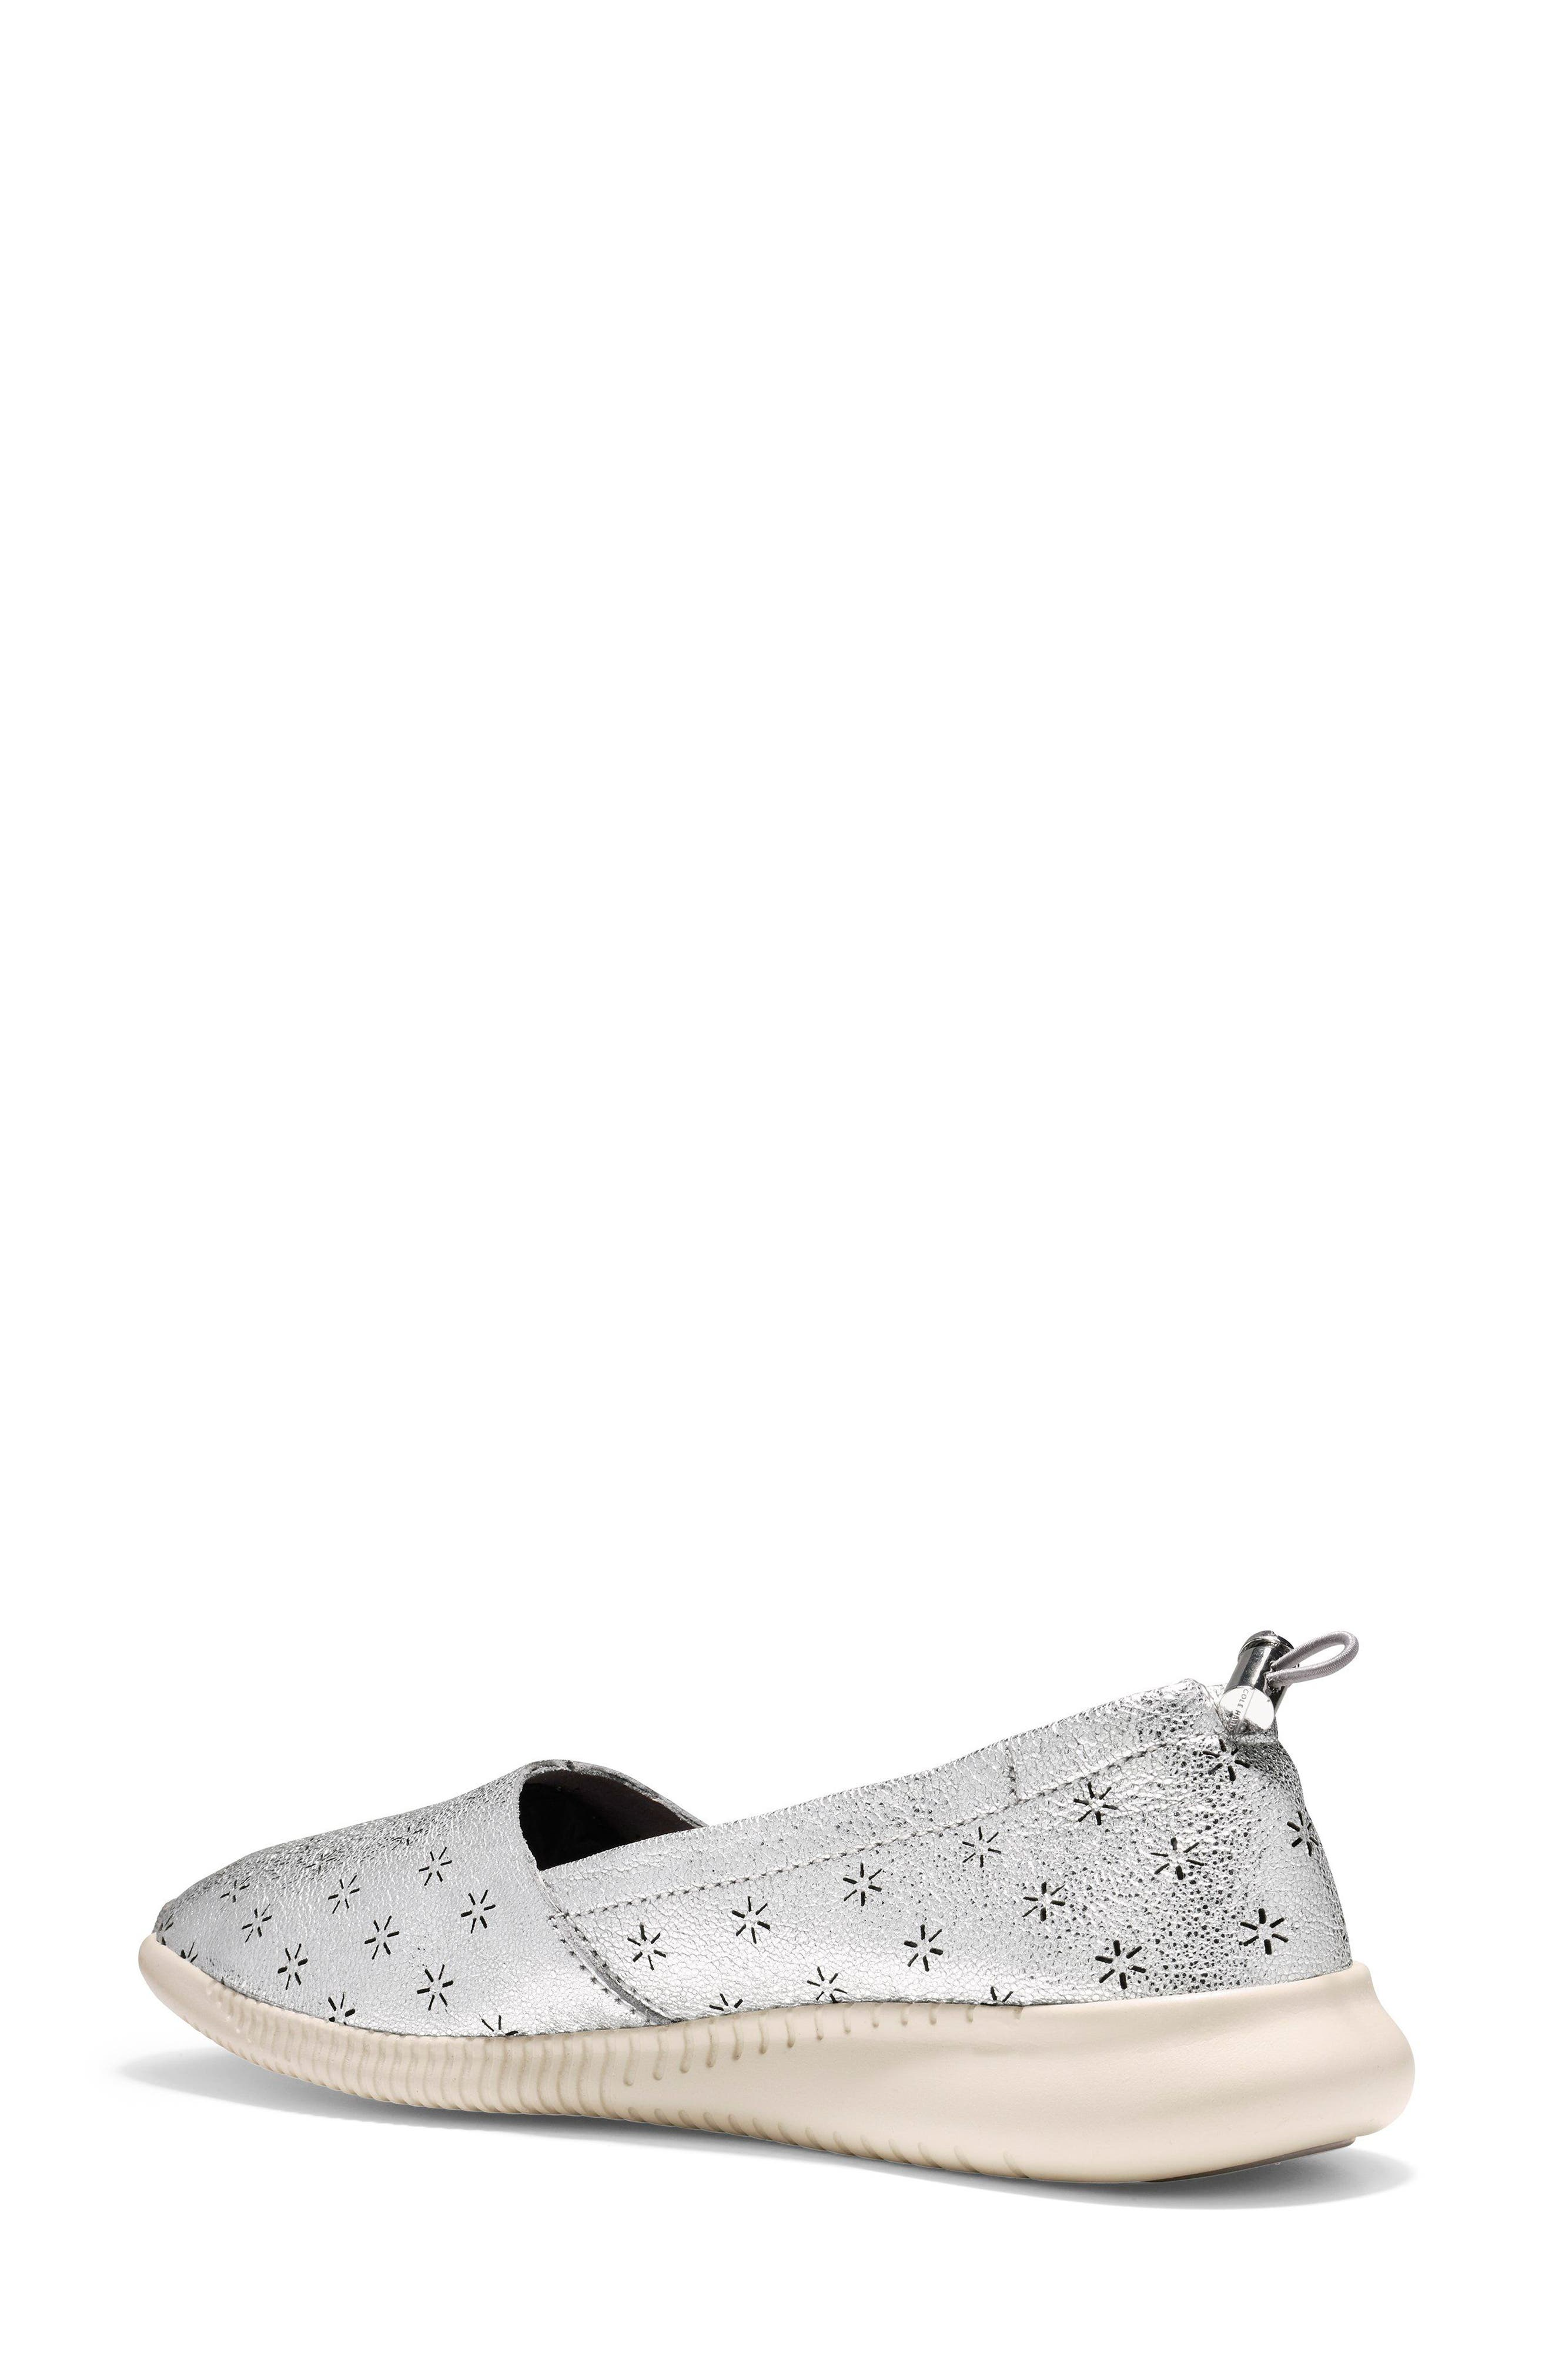 Studiogrand Perforated Slip-on,                             Alternate thumbnail 2, color,                             SILVER LEATHER